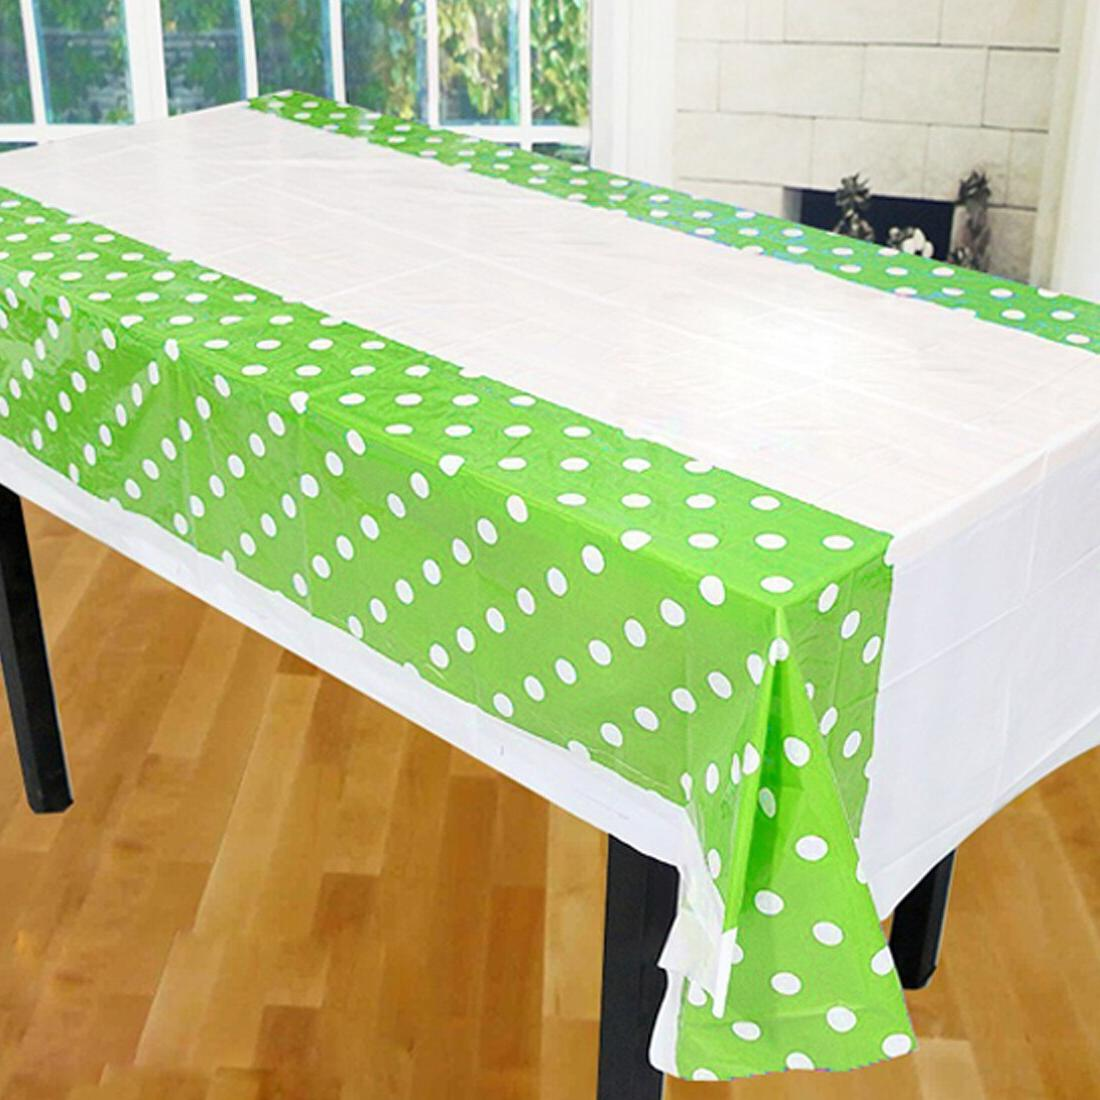 108 180CM Dot <font><b>Cloth</b></font> <font><b>Table</b></font> <font><b>Plastic</b></font> Birthday Tablecloth